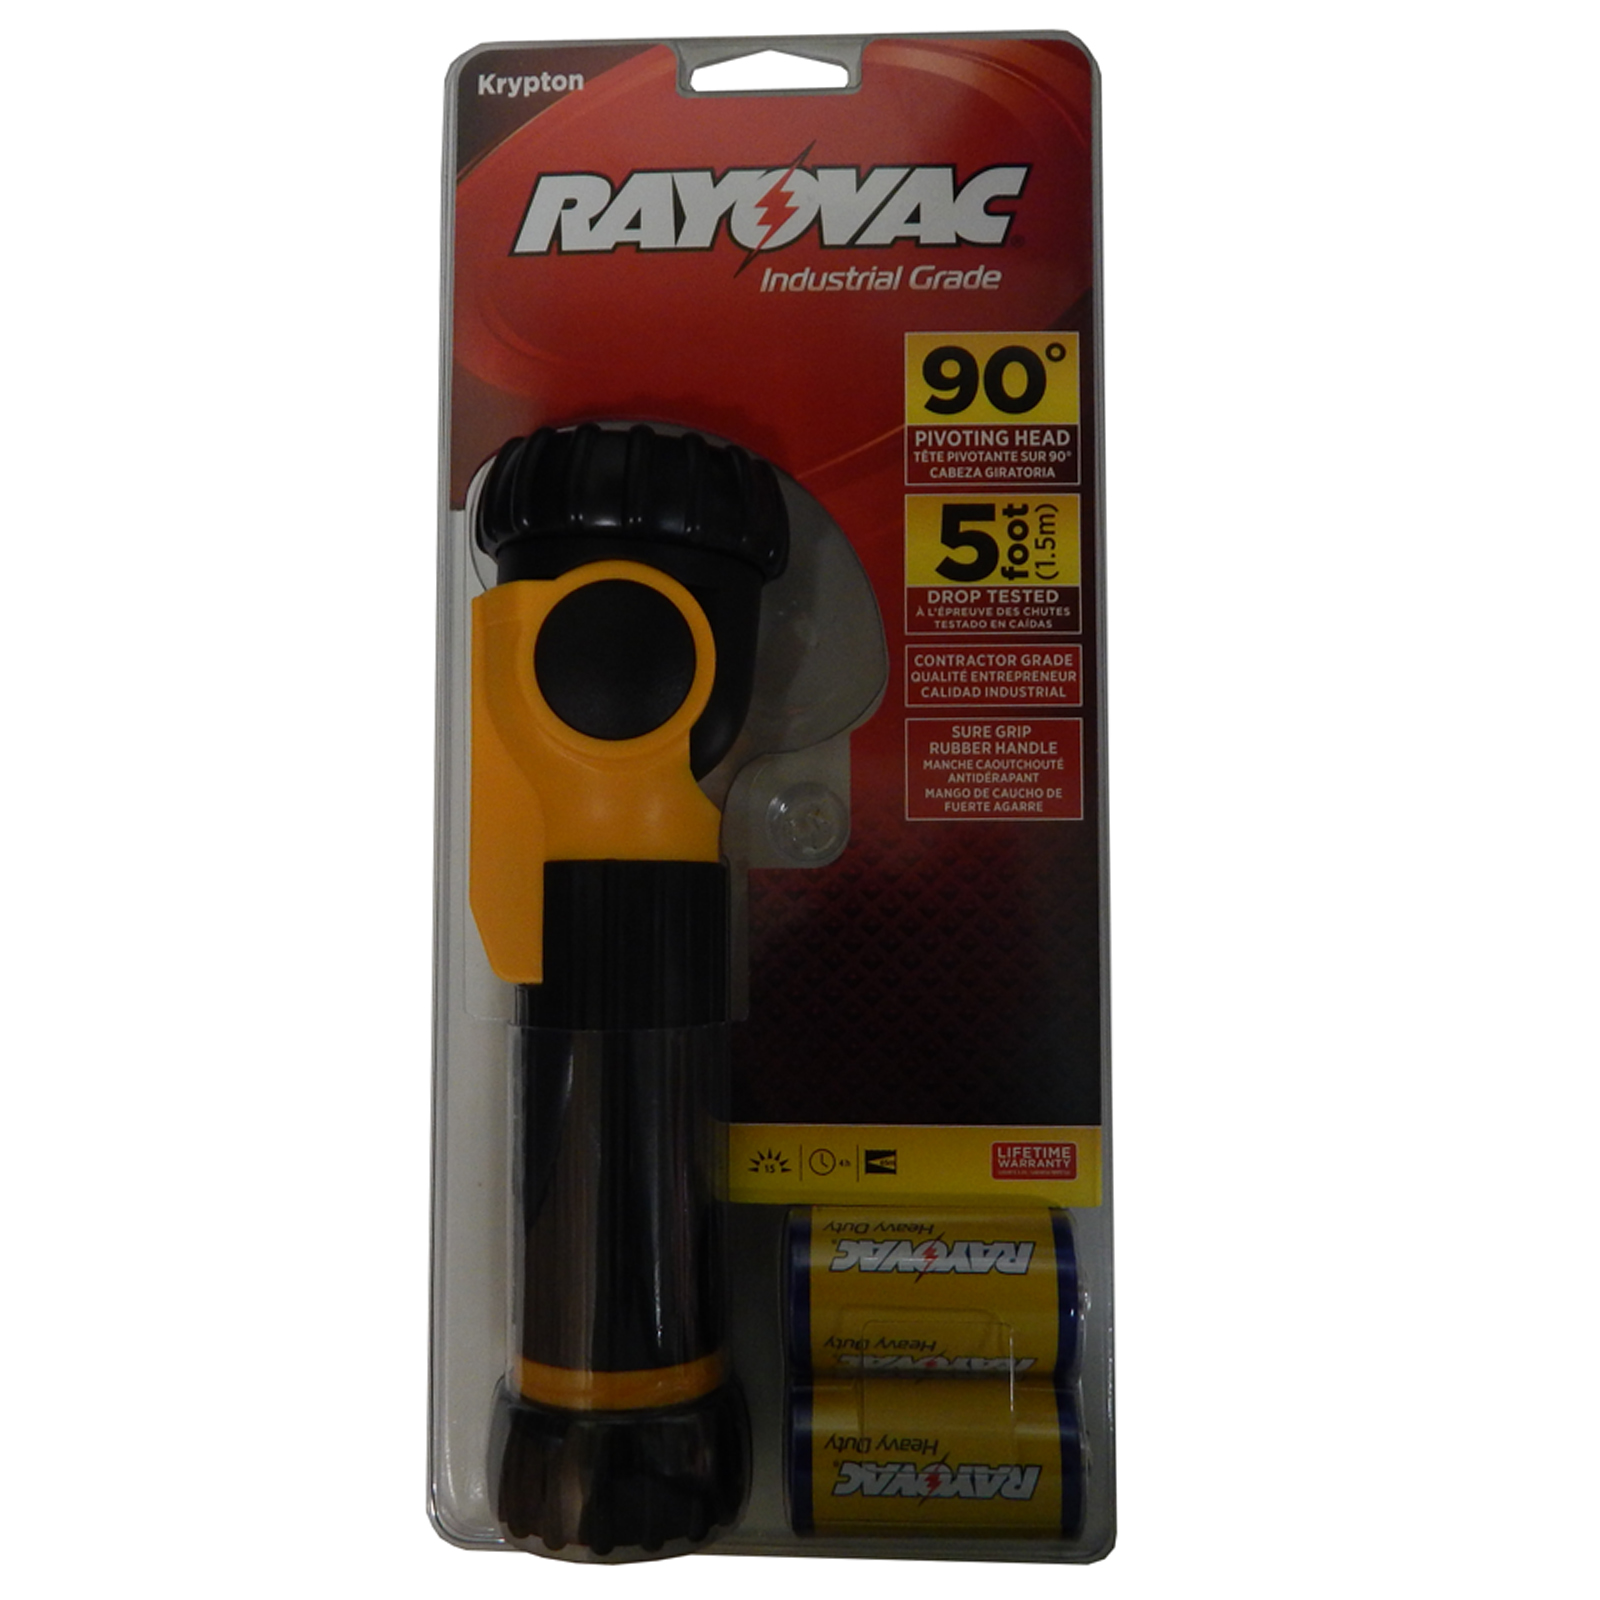 Rayovac Industrial Grade 2D Swivel Flashlight Batteries Included, ISL2D-BC